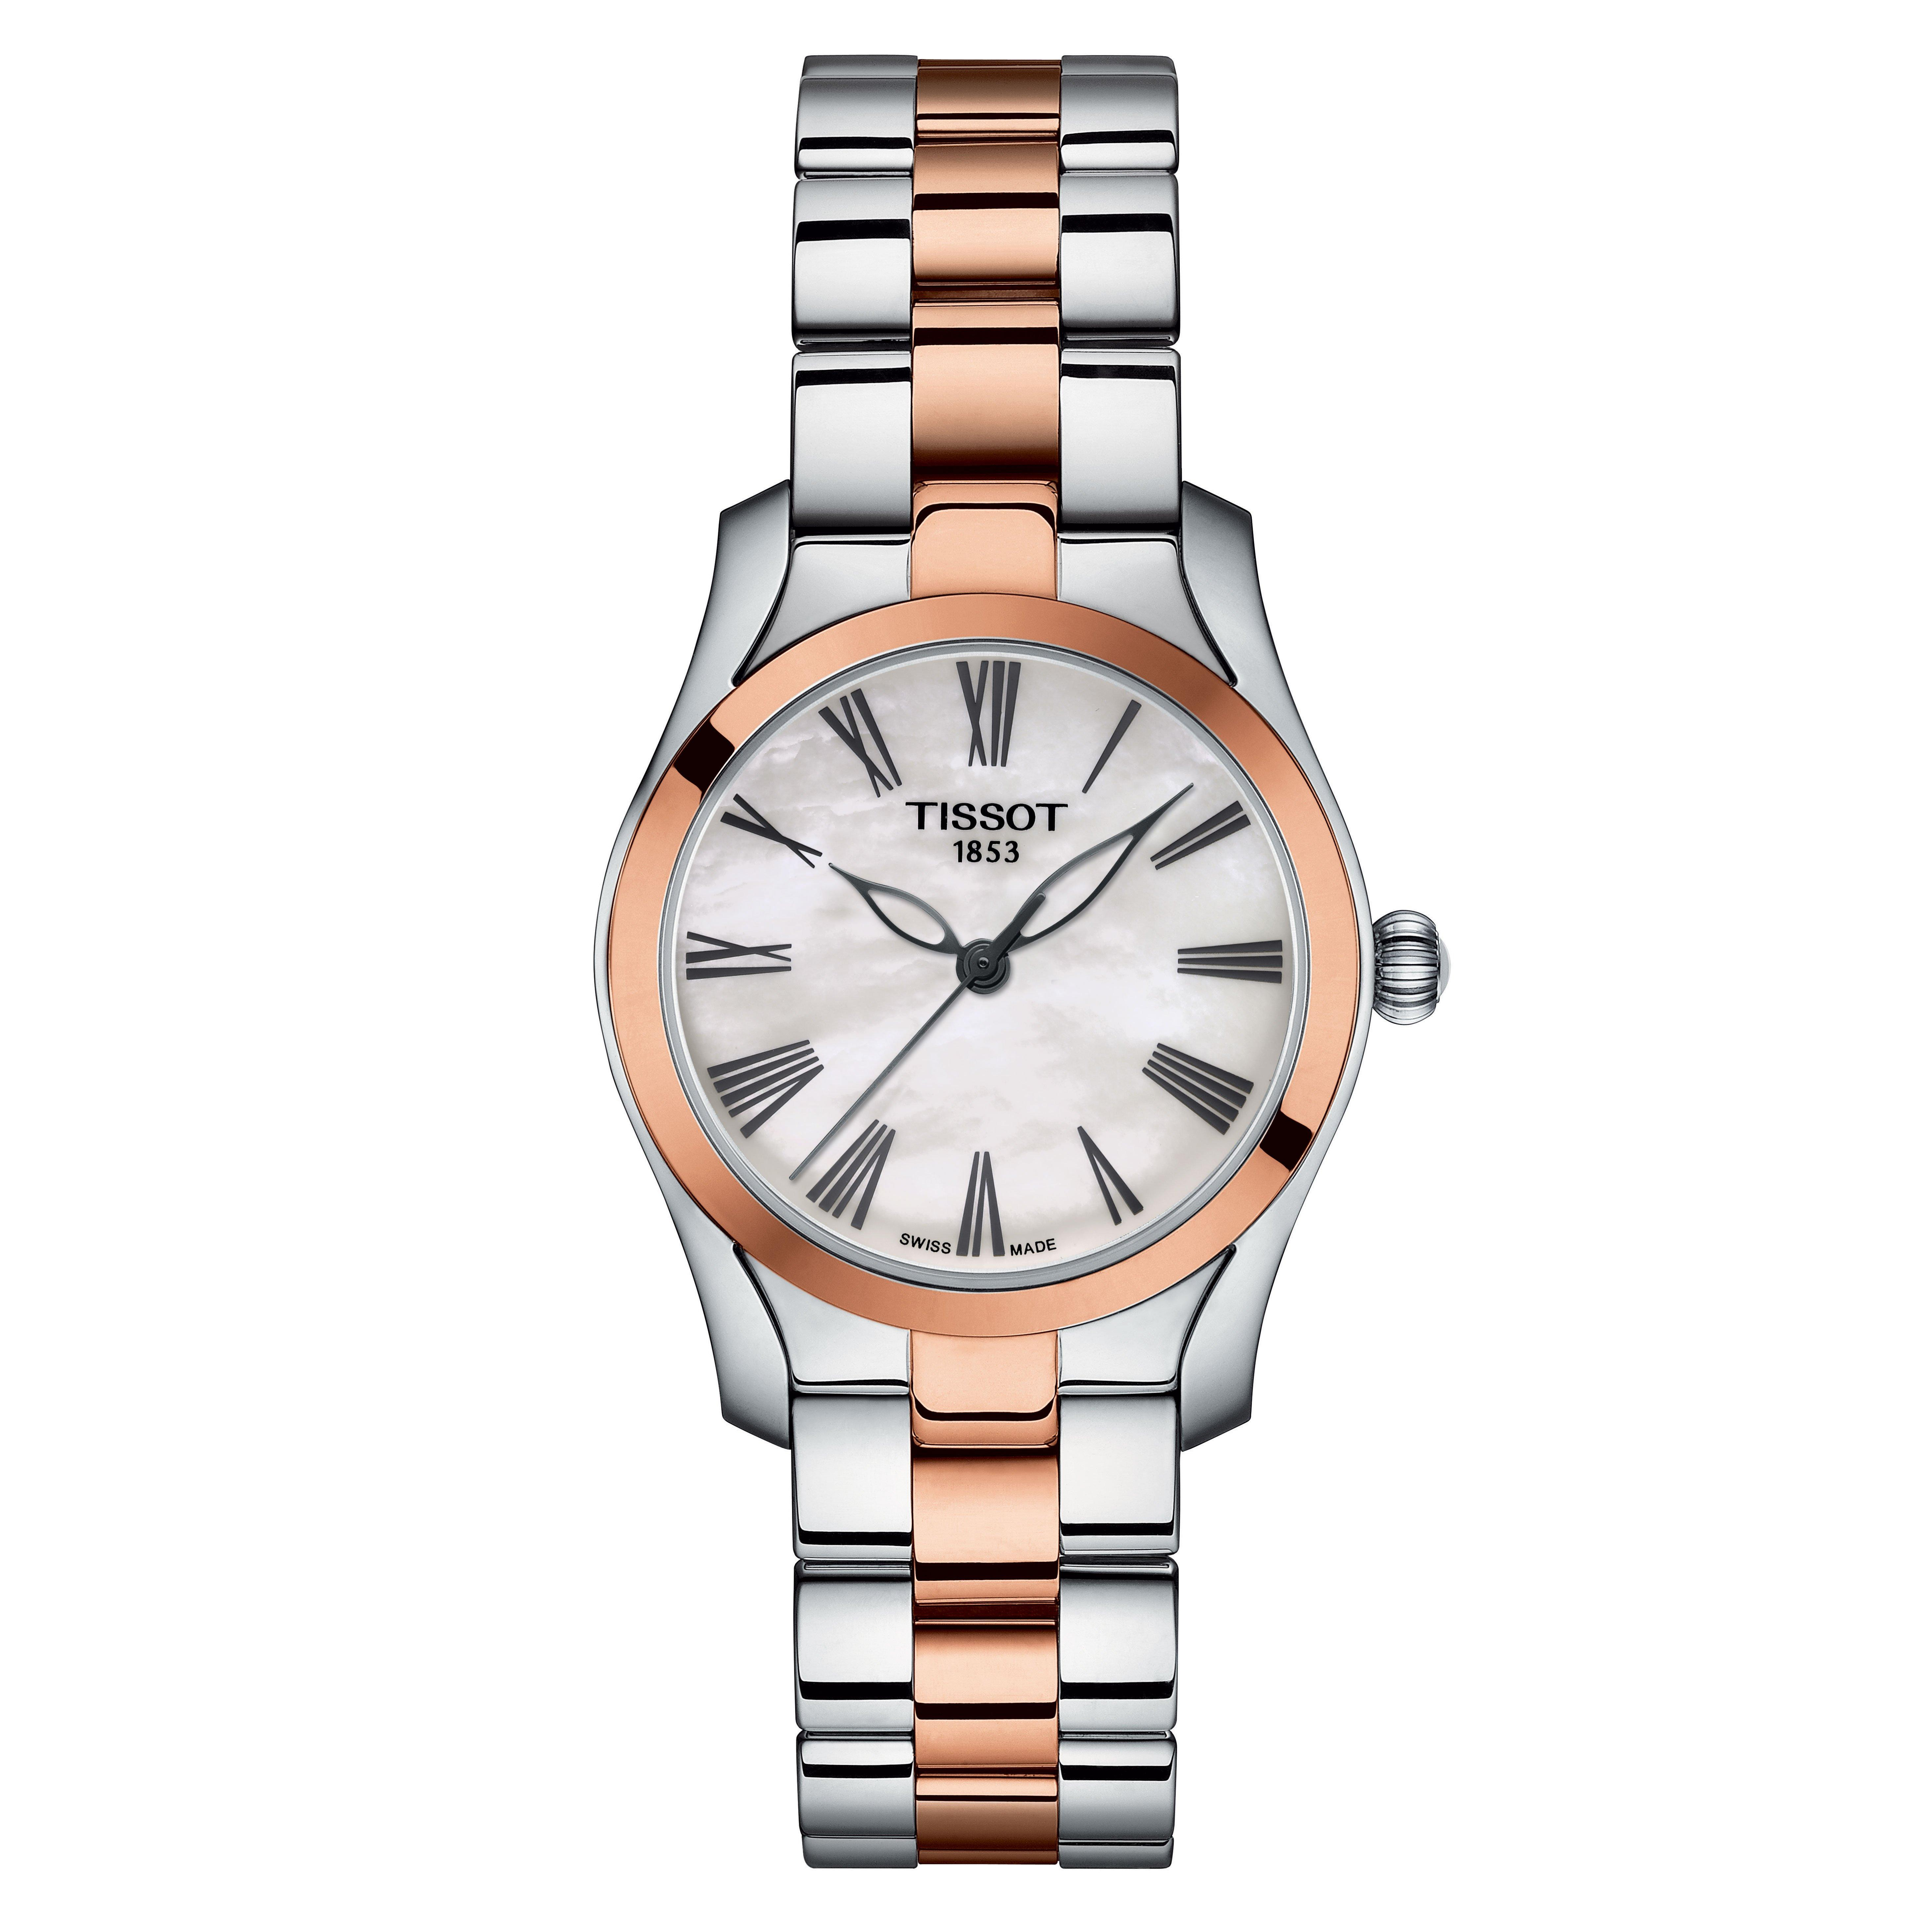 Tissot T-Wave Steel and Rose Gold Plated Ladies Watch